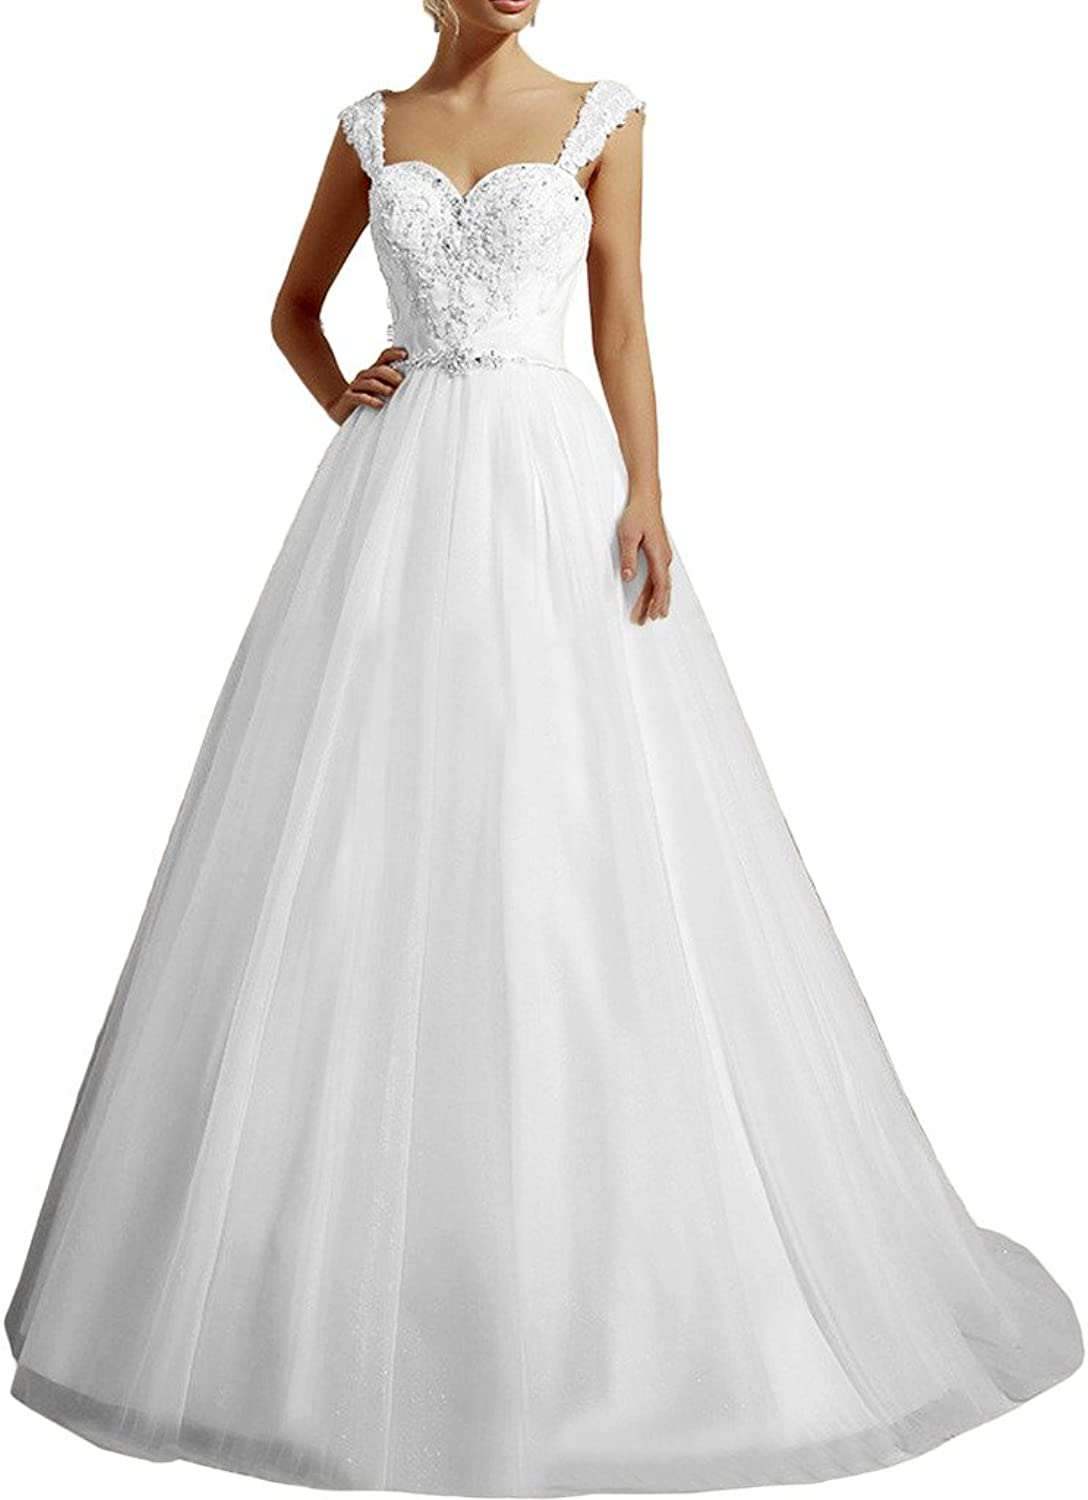 MILANO BRIDE Princess Bridal Wedding Dress Sweetheart Spaghetti Straps Beads